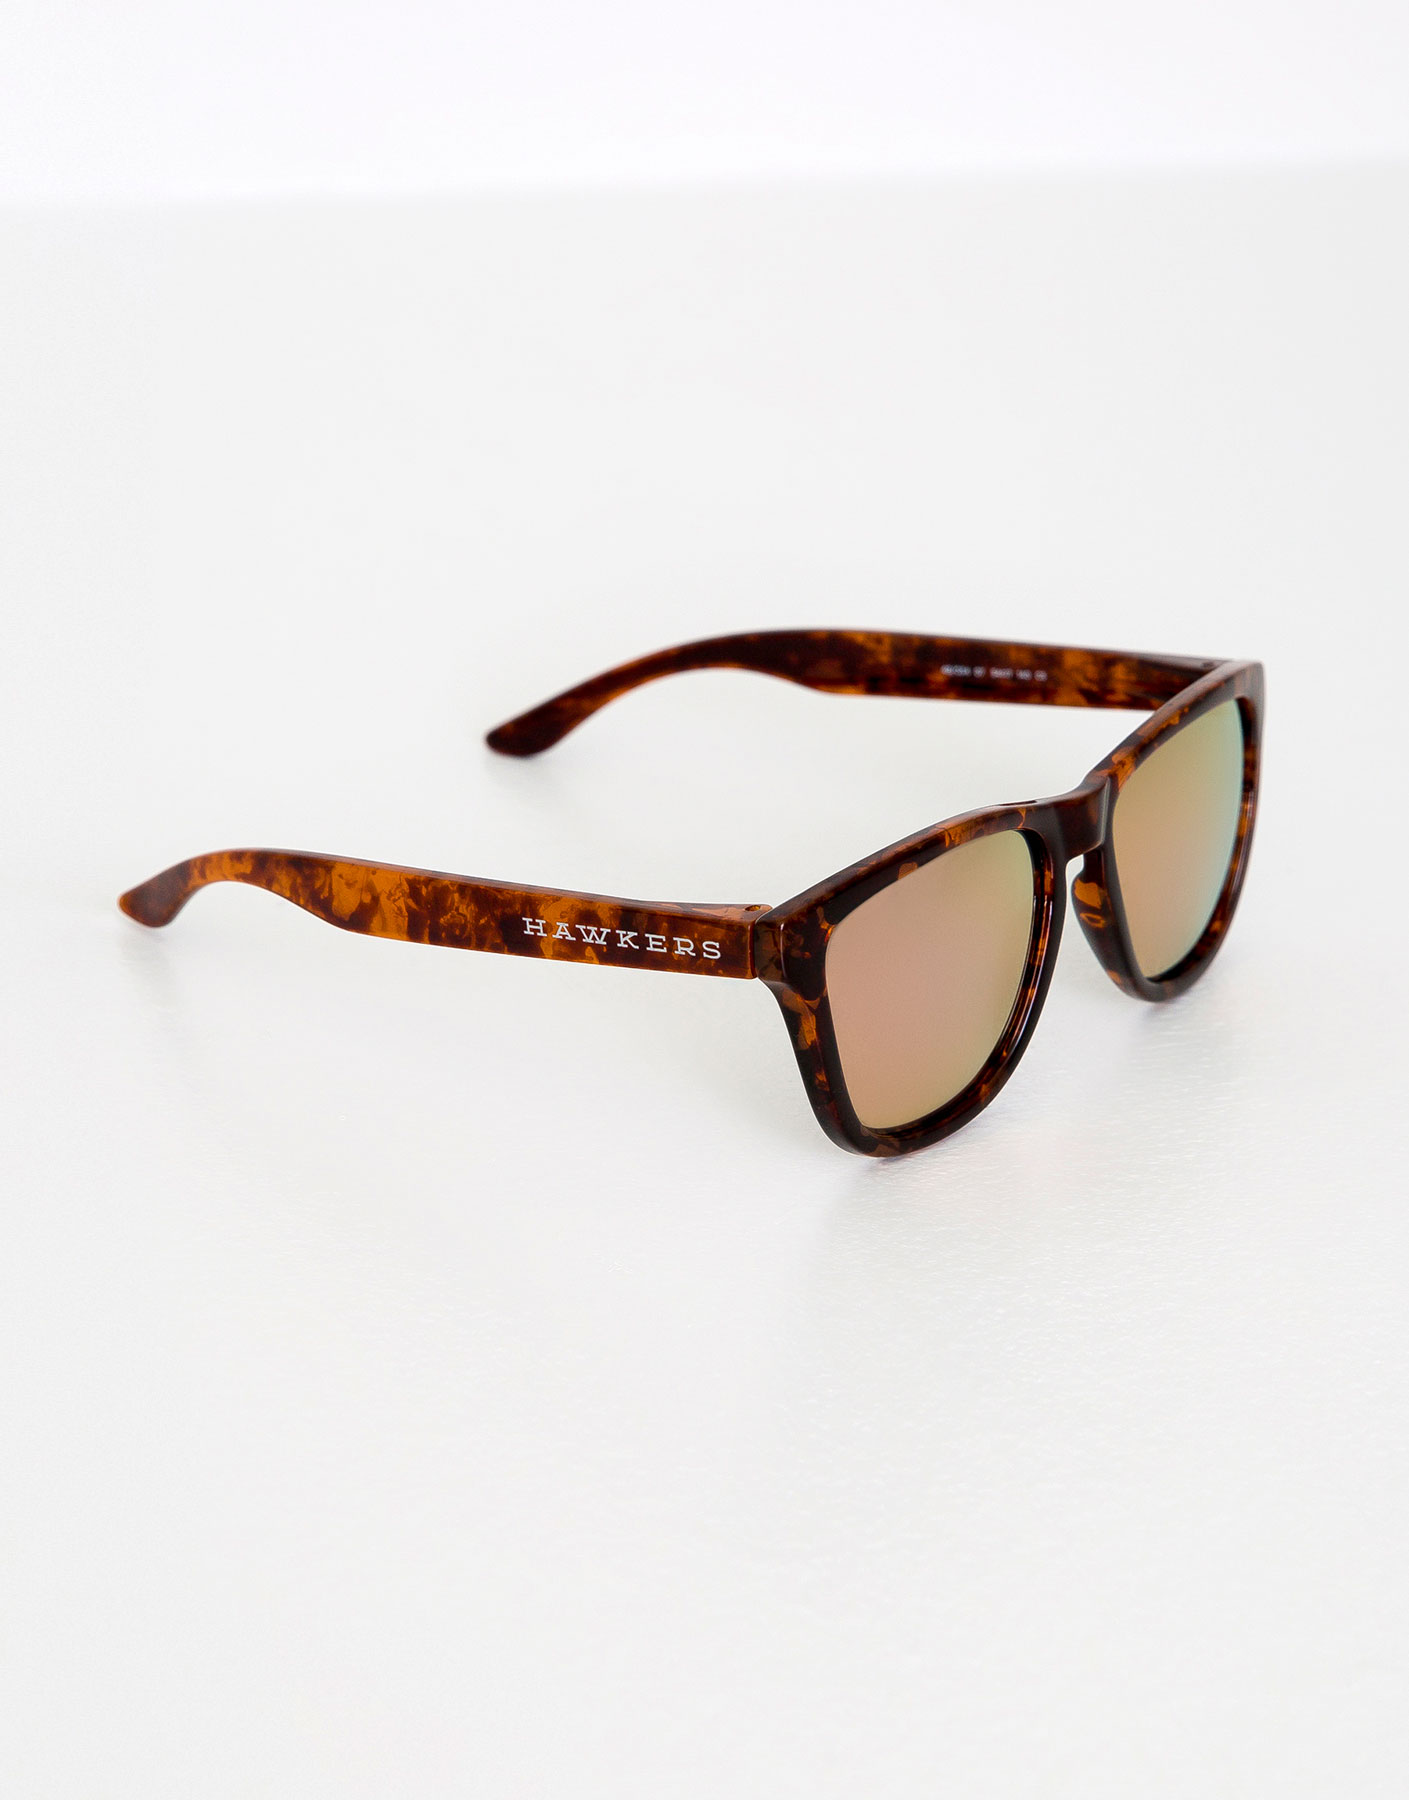 Gafas de sol hawkers carey rose gold one